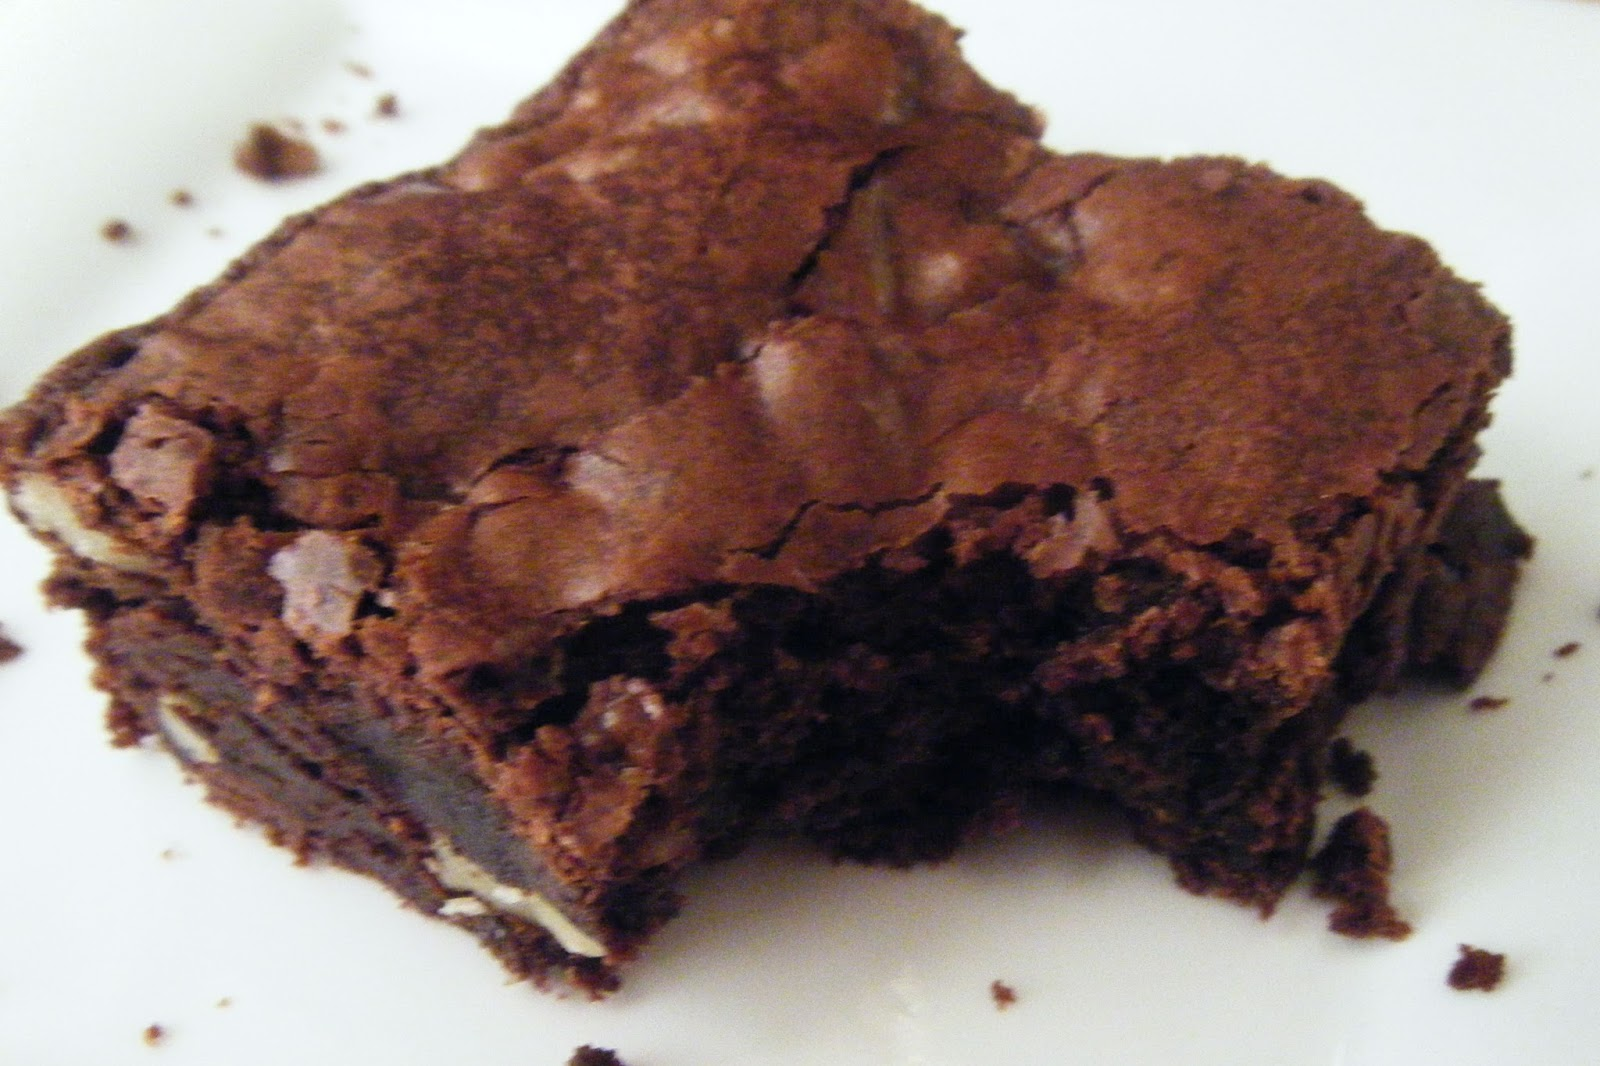 west side baker: Outrageous Brownies